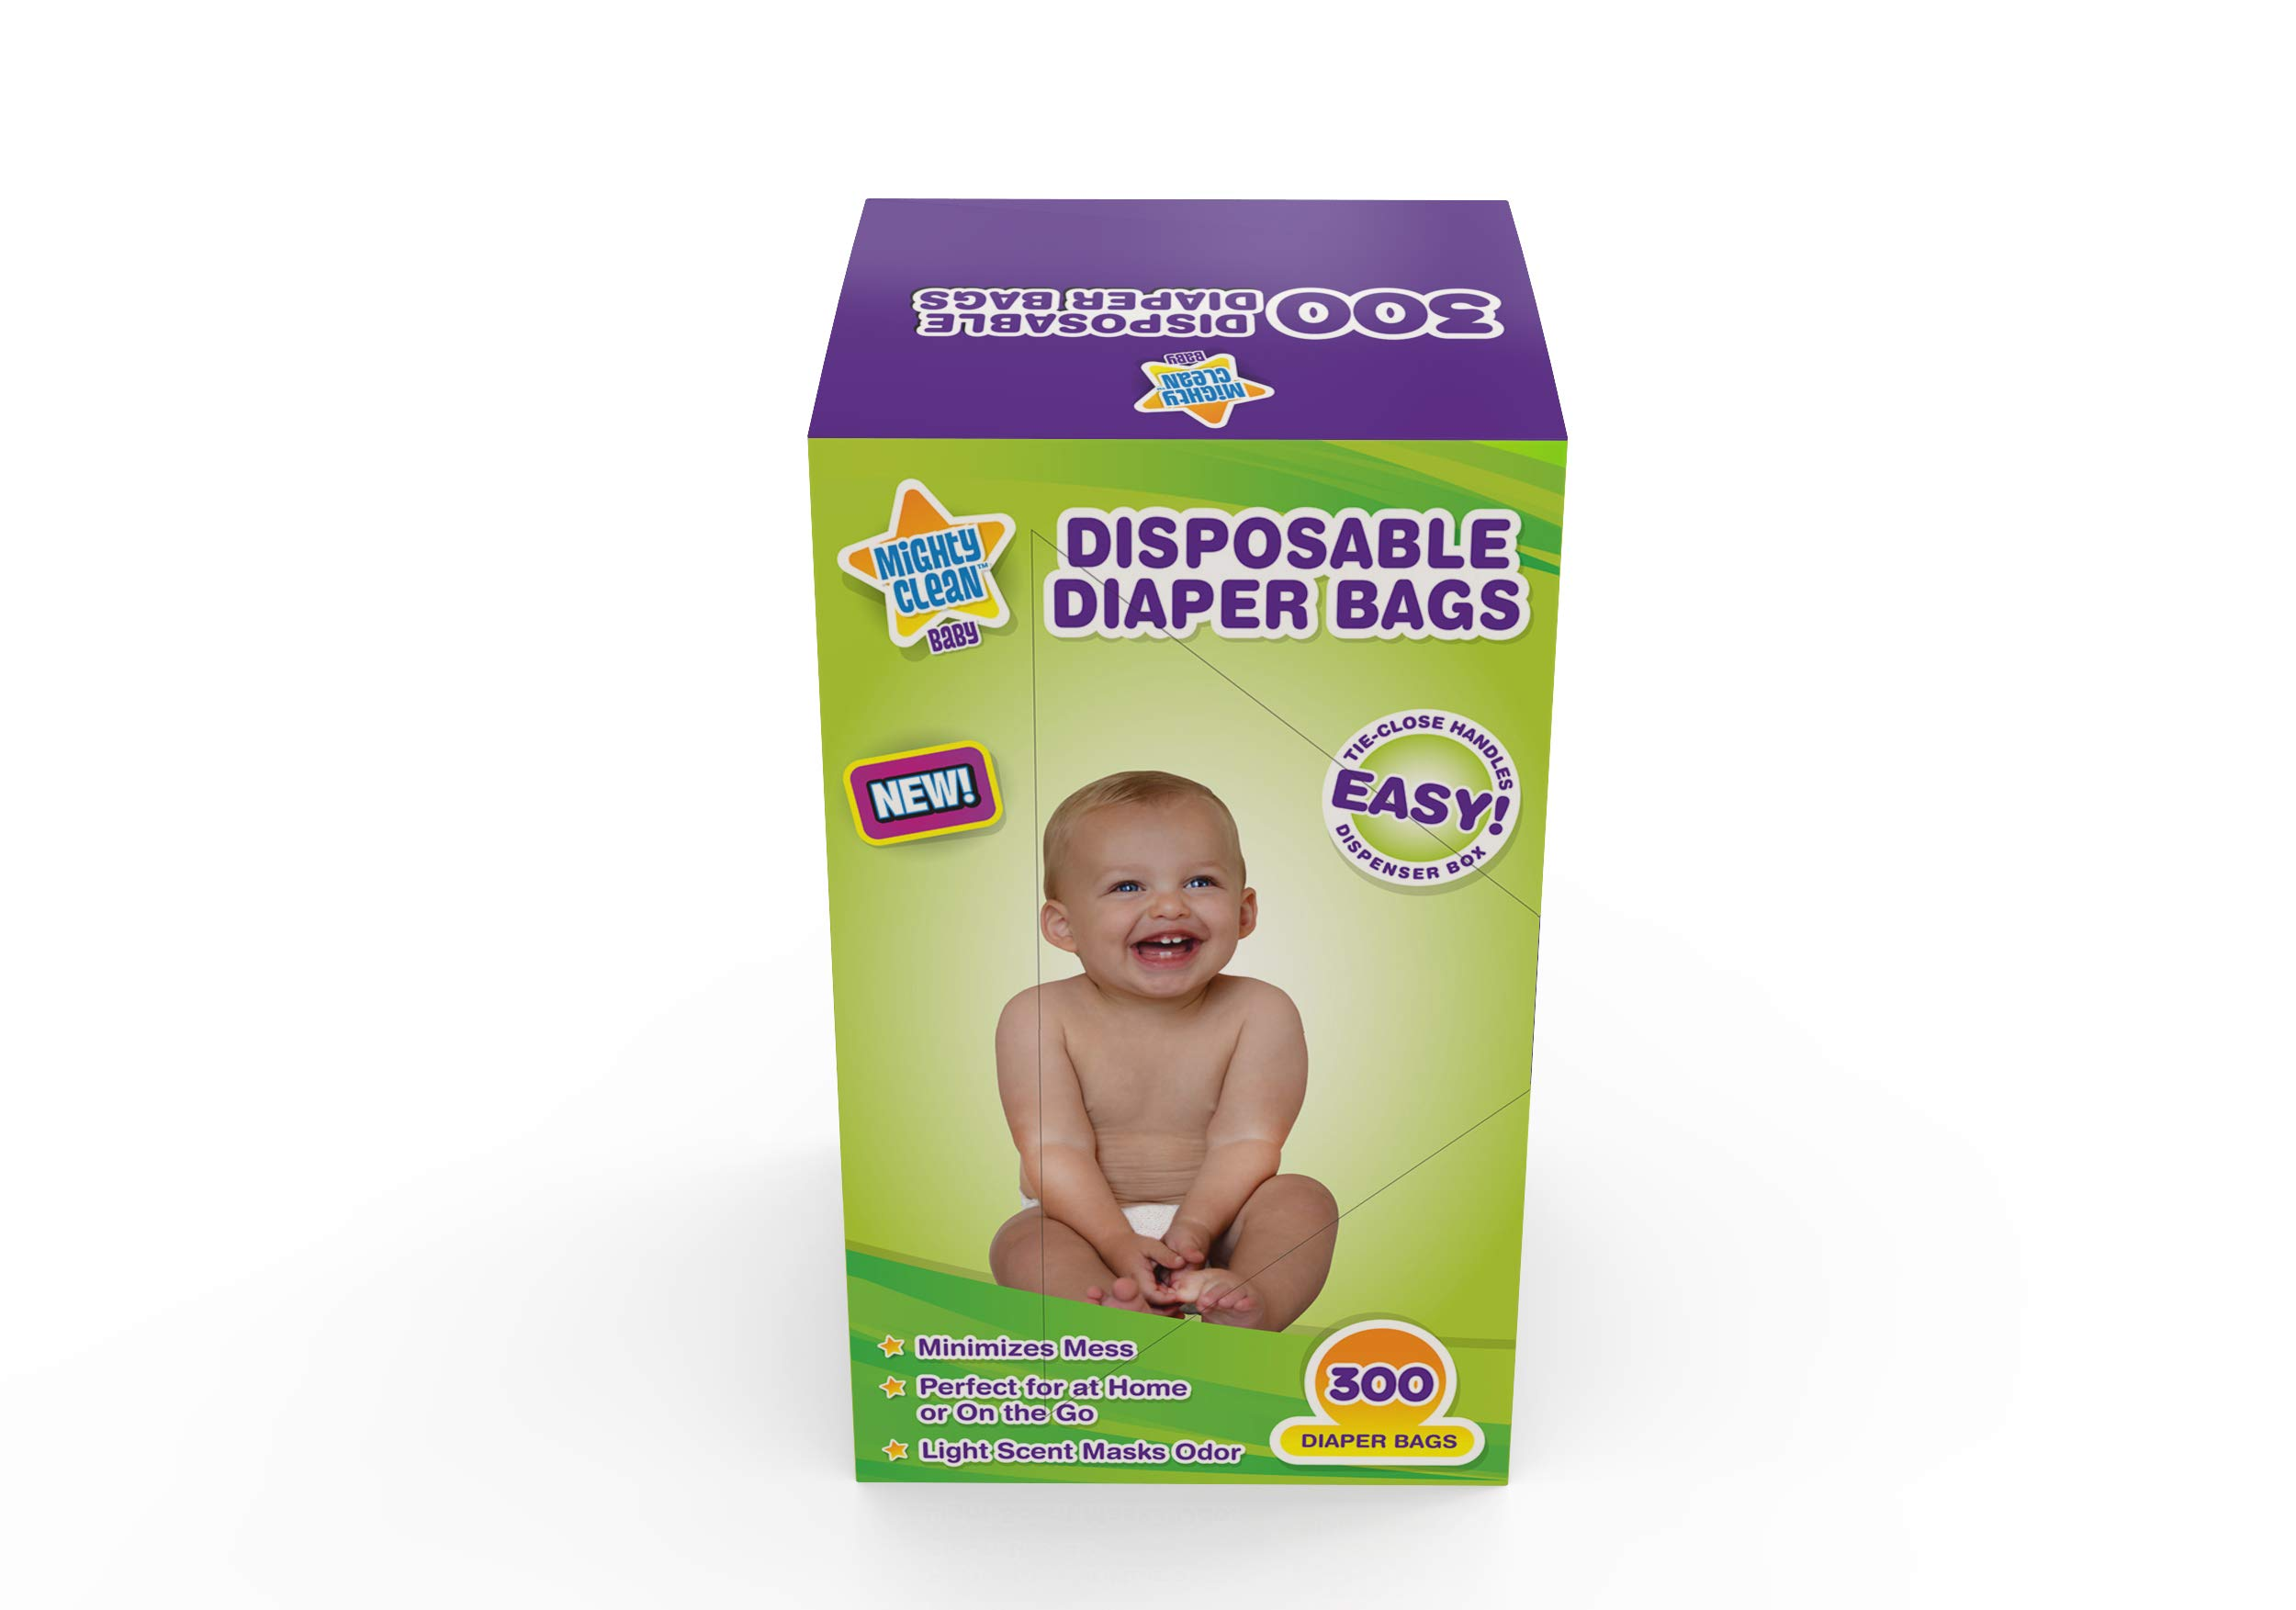 Mighty Clean Baby Disposable Diaper Bags with Light Powder Scent, 300 Count by Mighty Clean